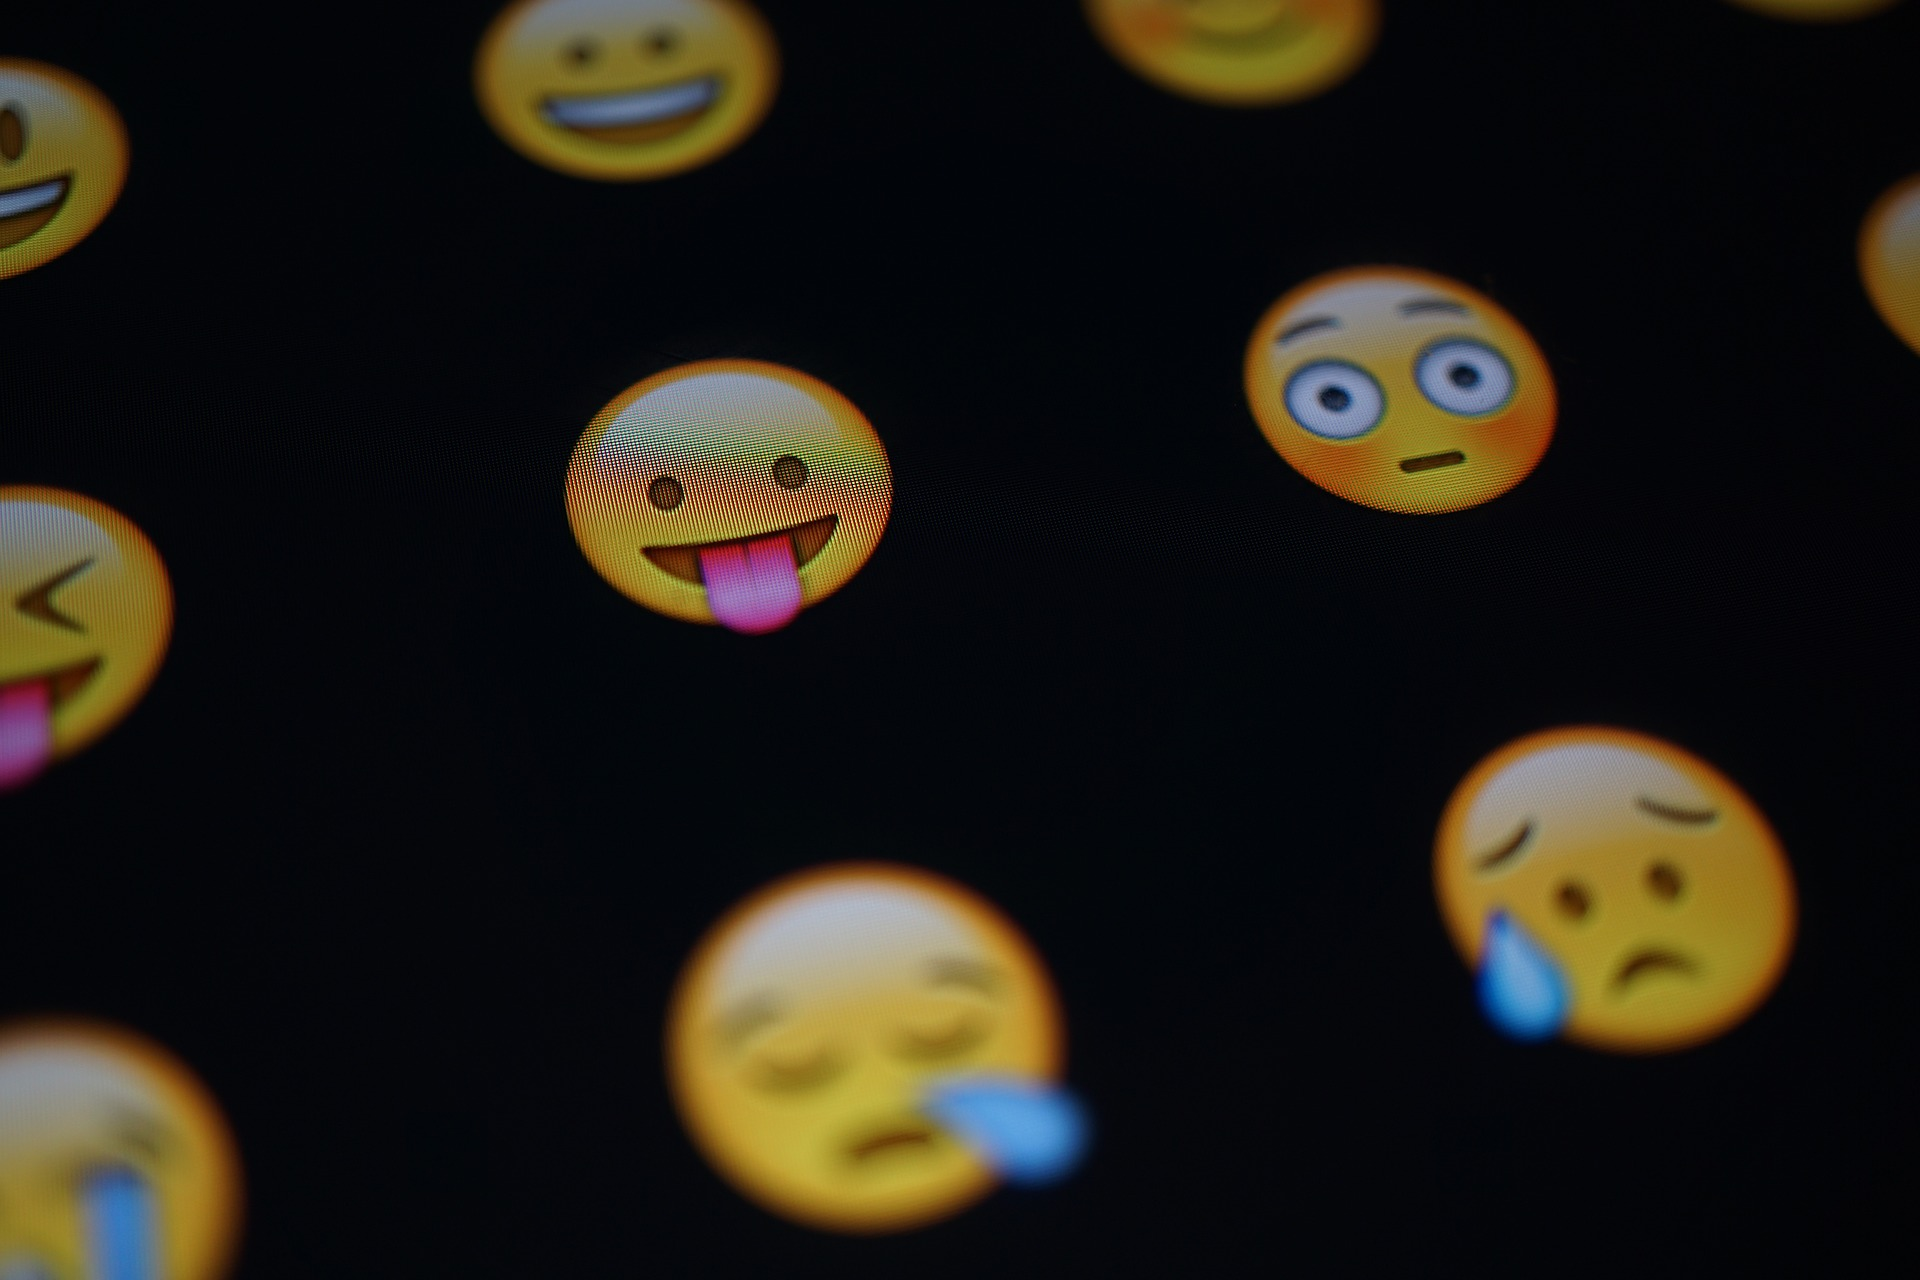 Things you didn't know you could do with emoji